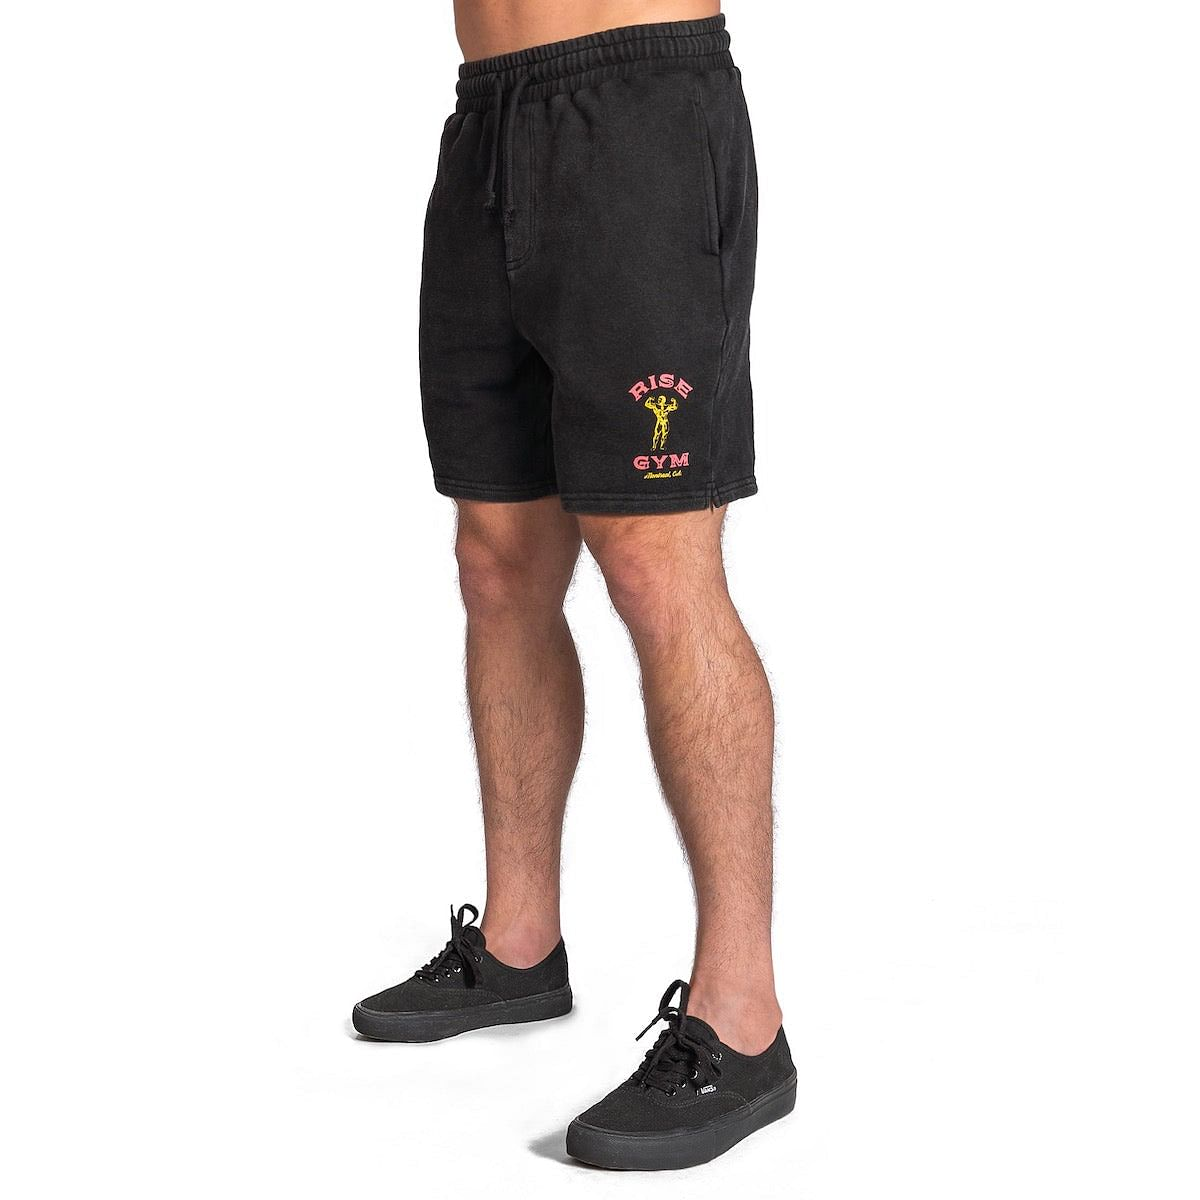 "Era Shorts 7"" - Black"